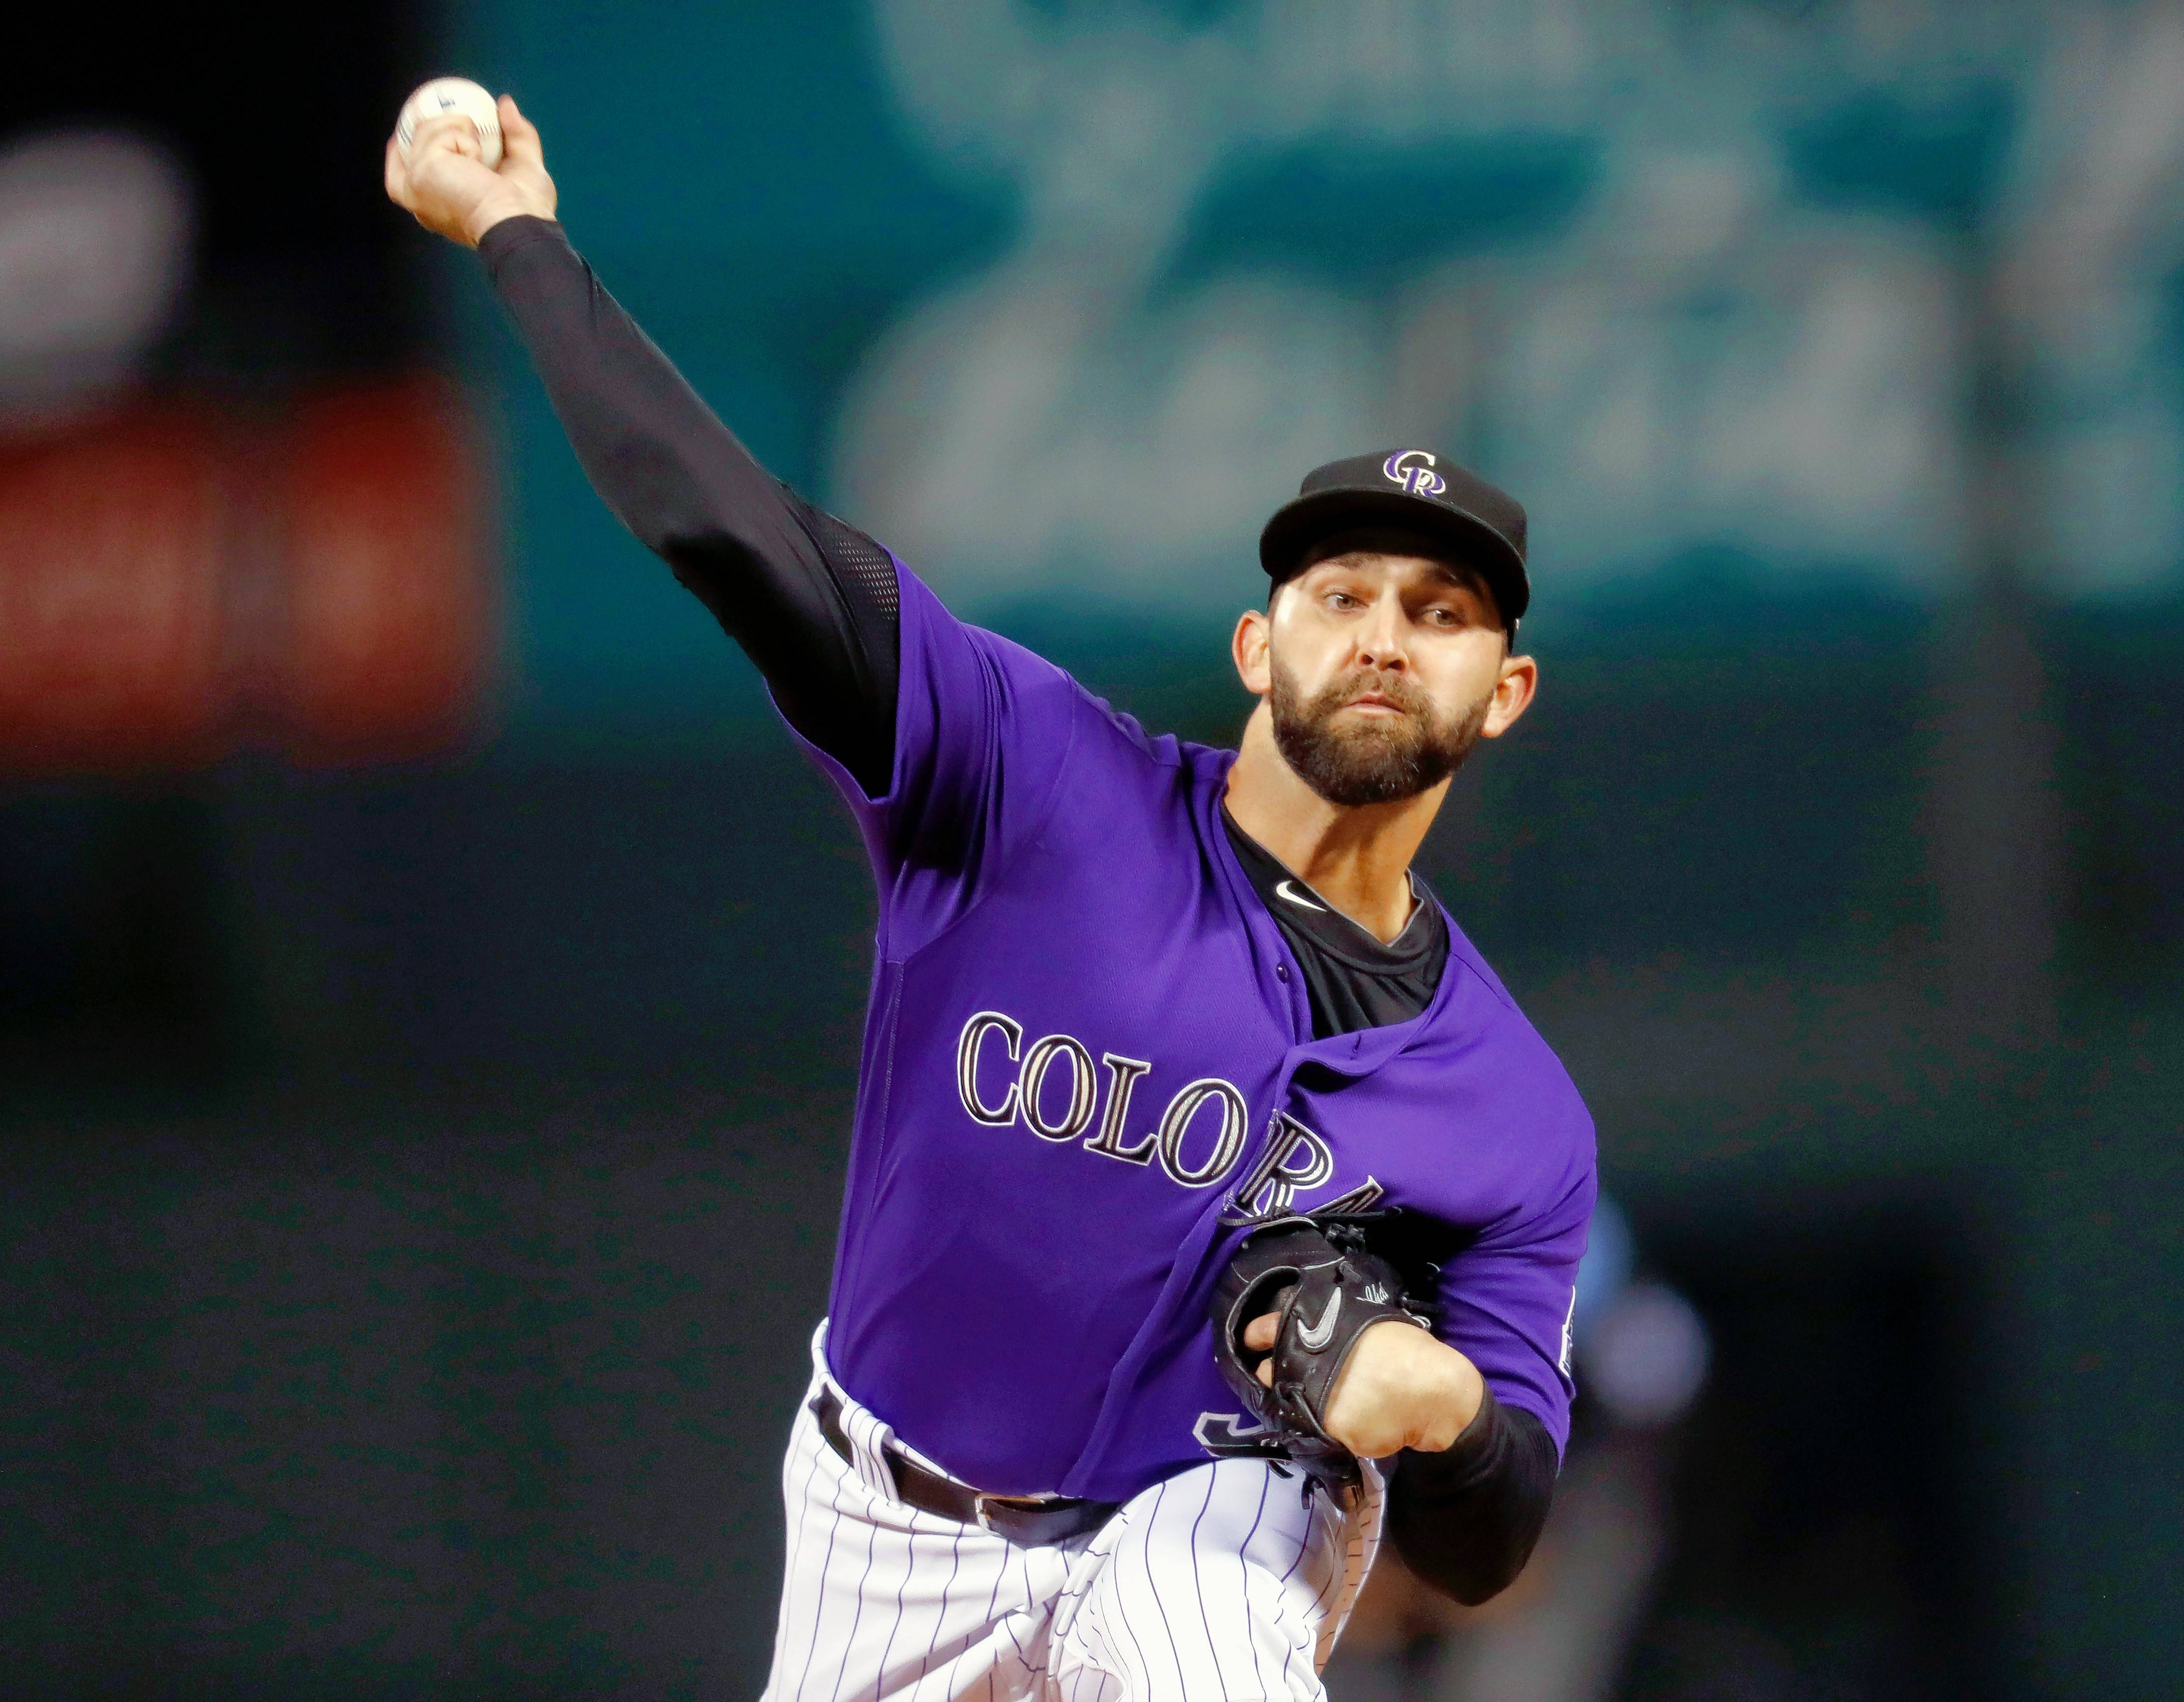 Former Colorado Rockies starting pitcher Tyler Chatwood has signed a three-year deal with the Chicago Cubs.